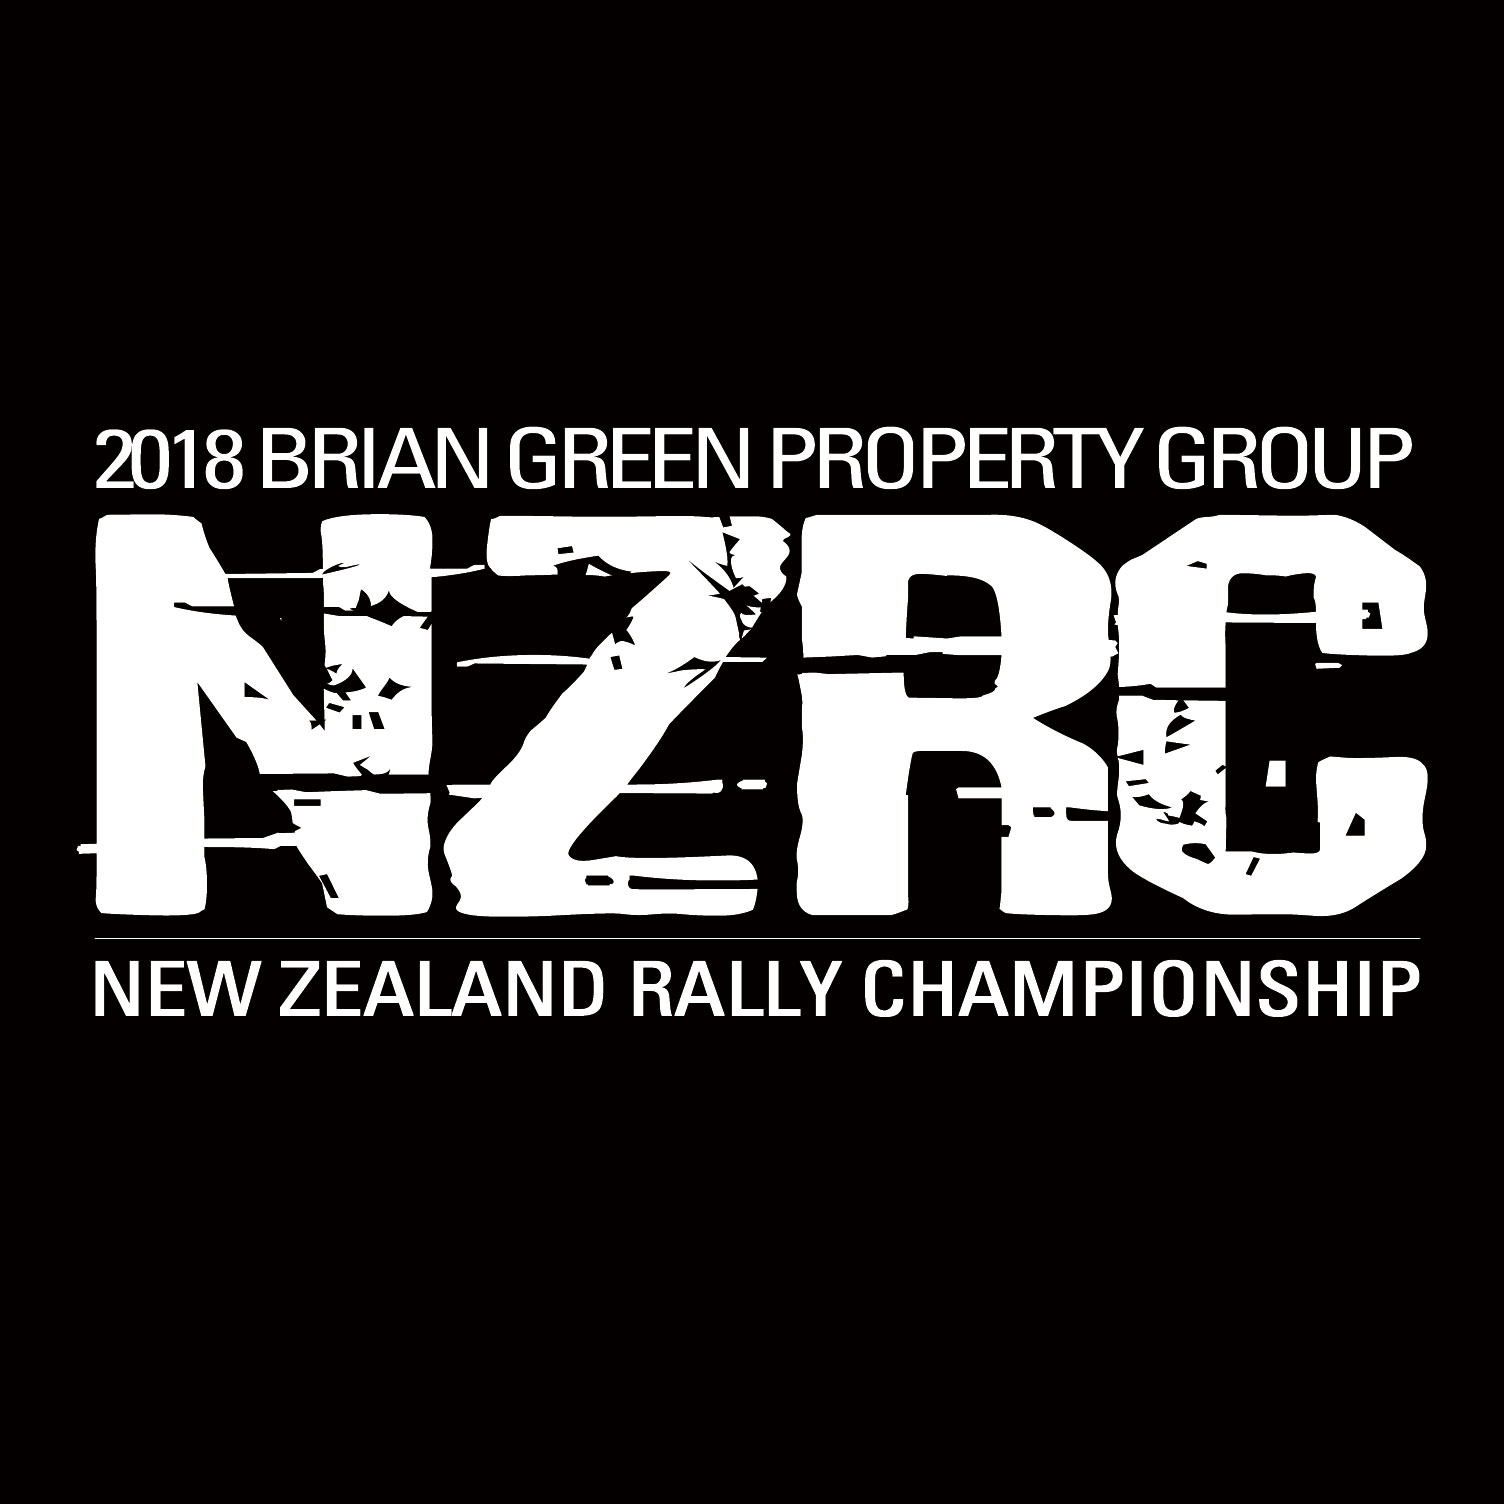 August | 2014 | :: Brian Green Property Group New Zealand Rally Championship ::